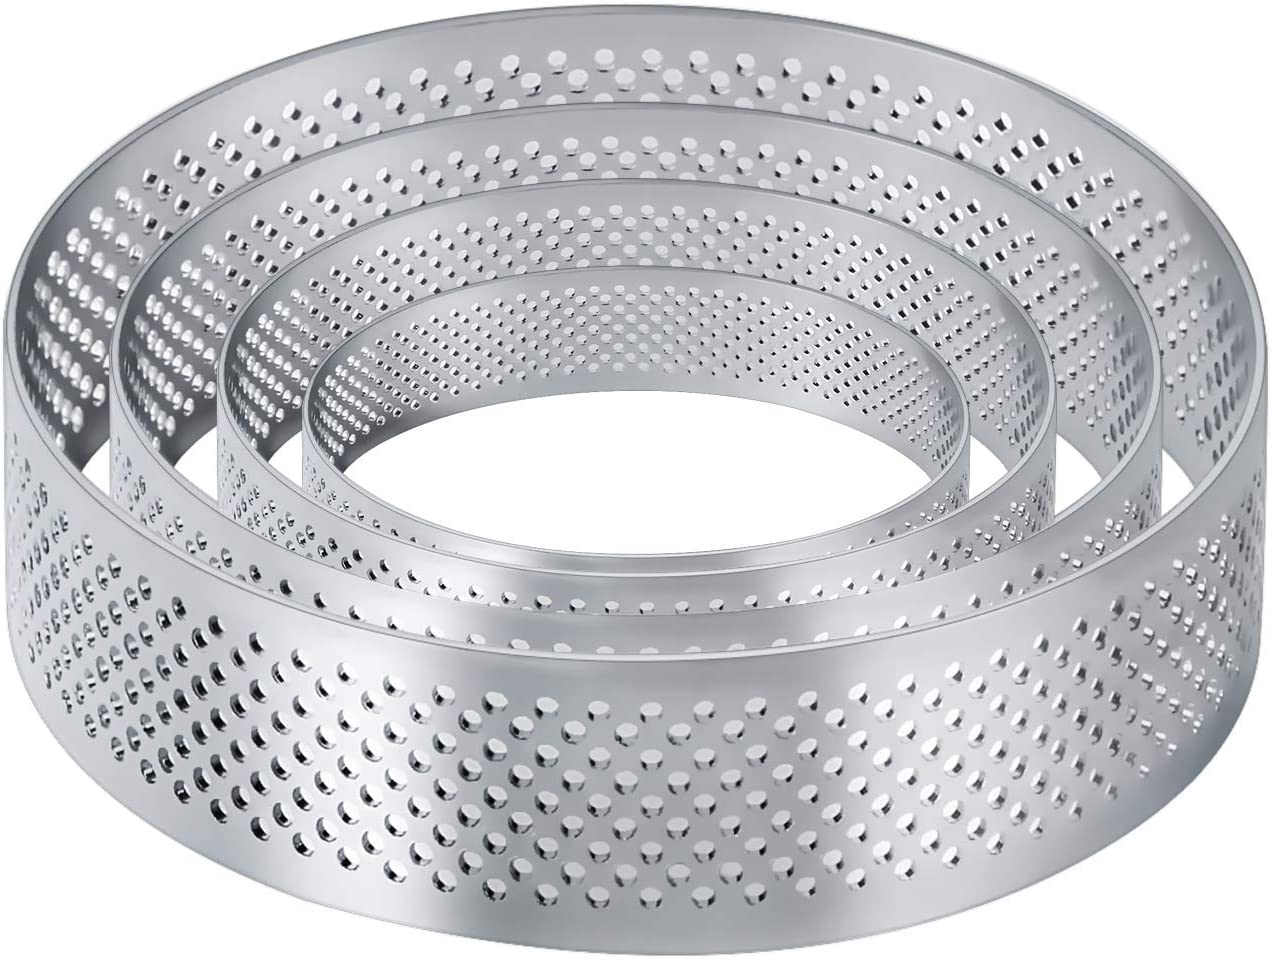 Details about  /Kitchen Tool Tart-Ring Round Round 5Sizes Ring Cake Stainless Perforated